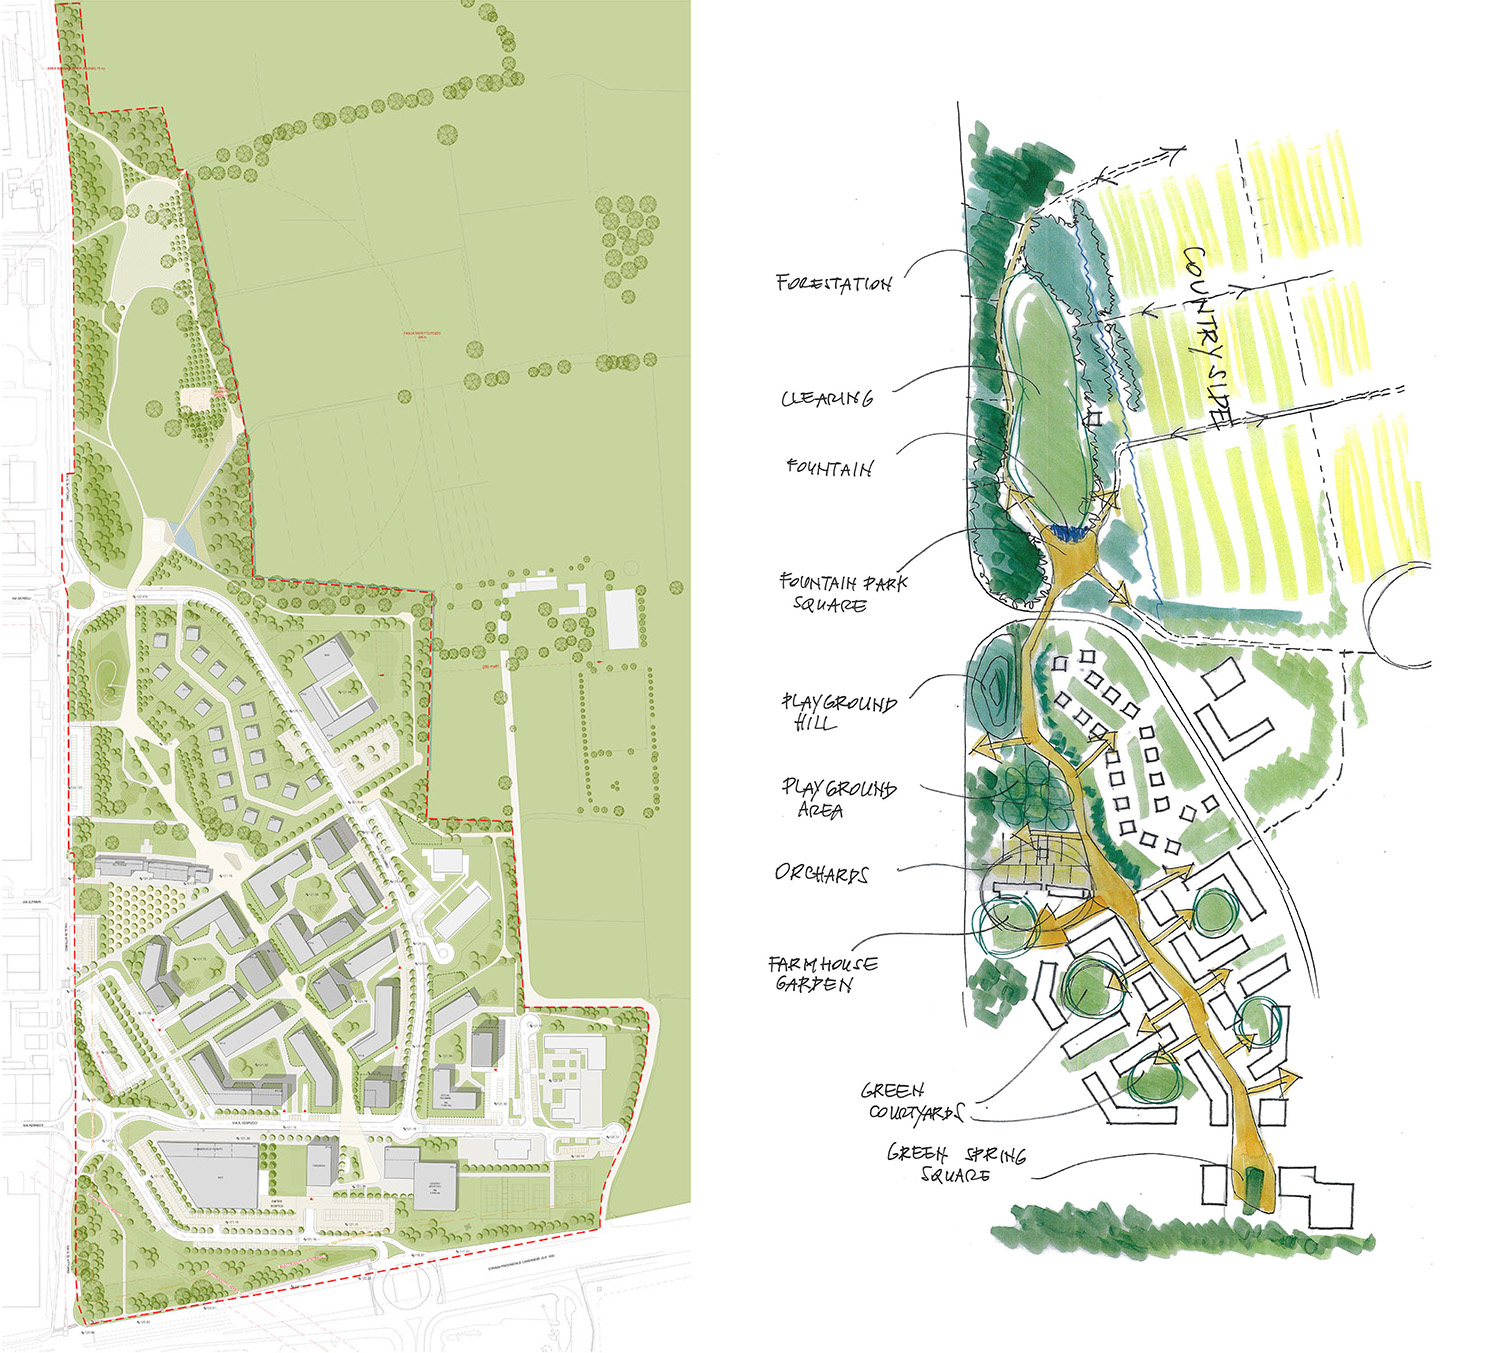 General Plan MAB arquitectura + Ag&p greenscape}